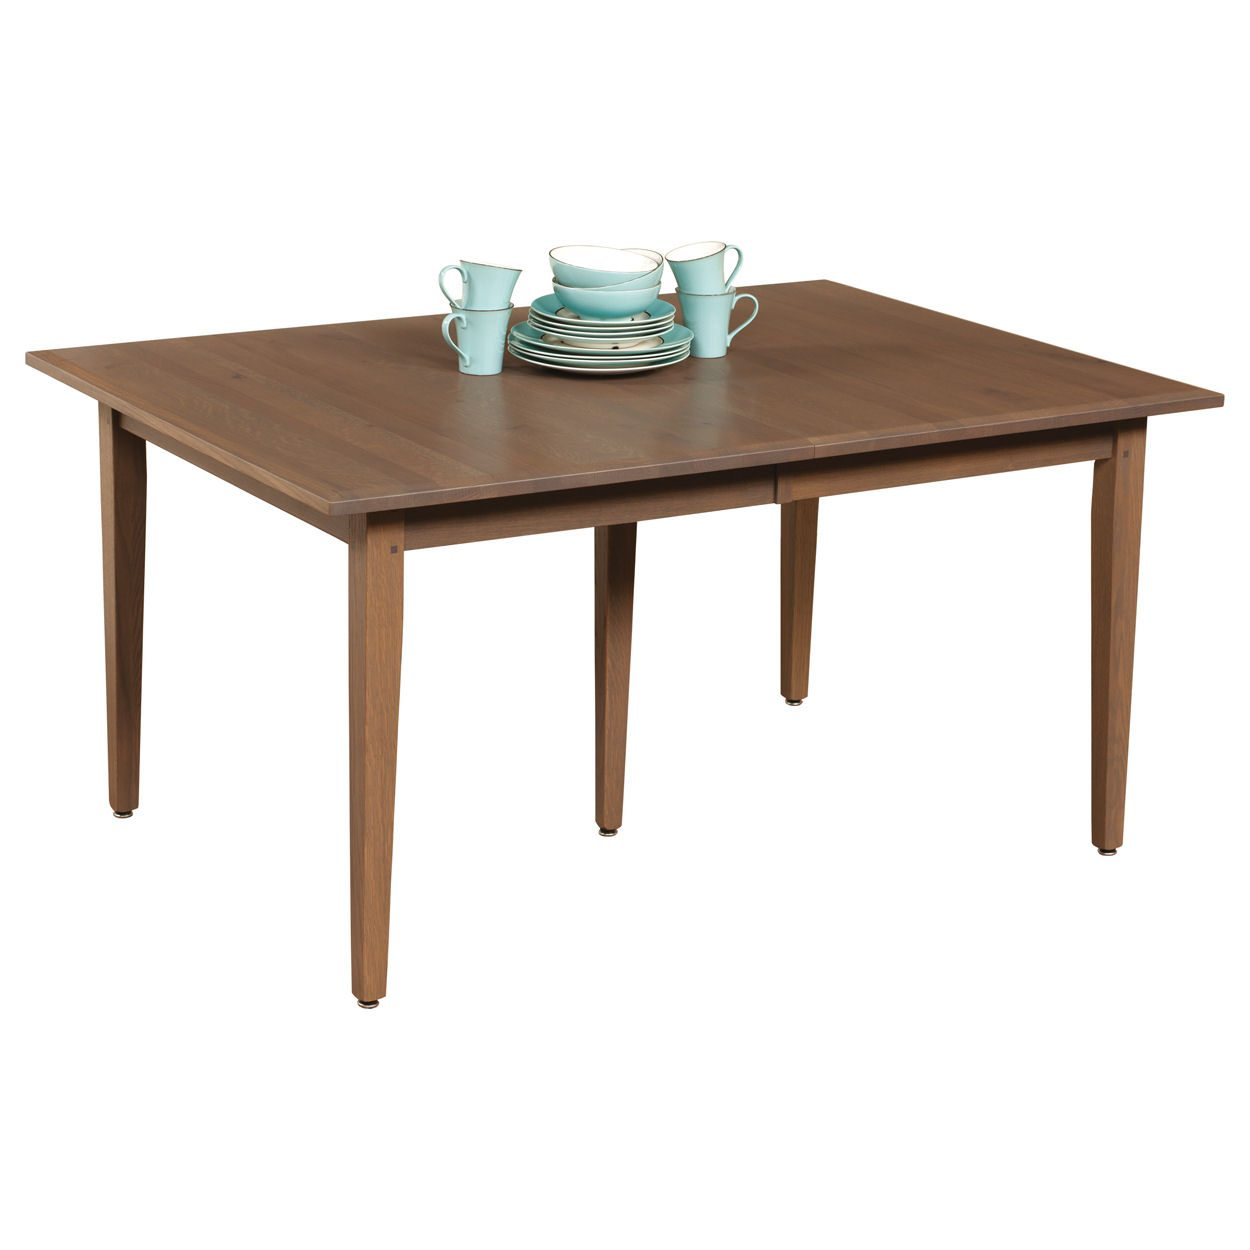 Galilean Dining Collection G23-20 Dining Table with Leaves